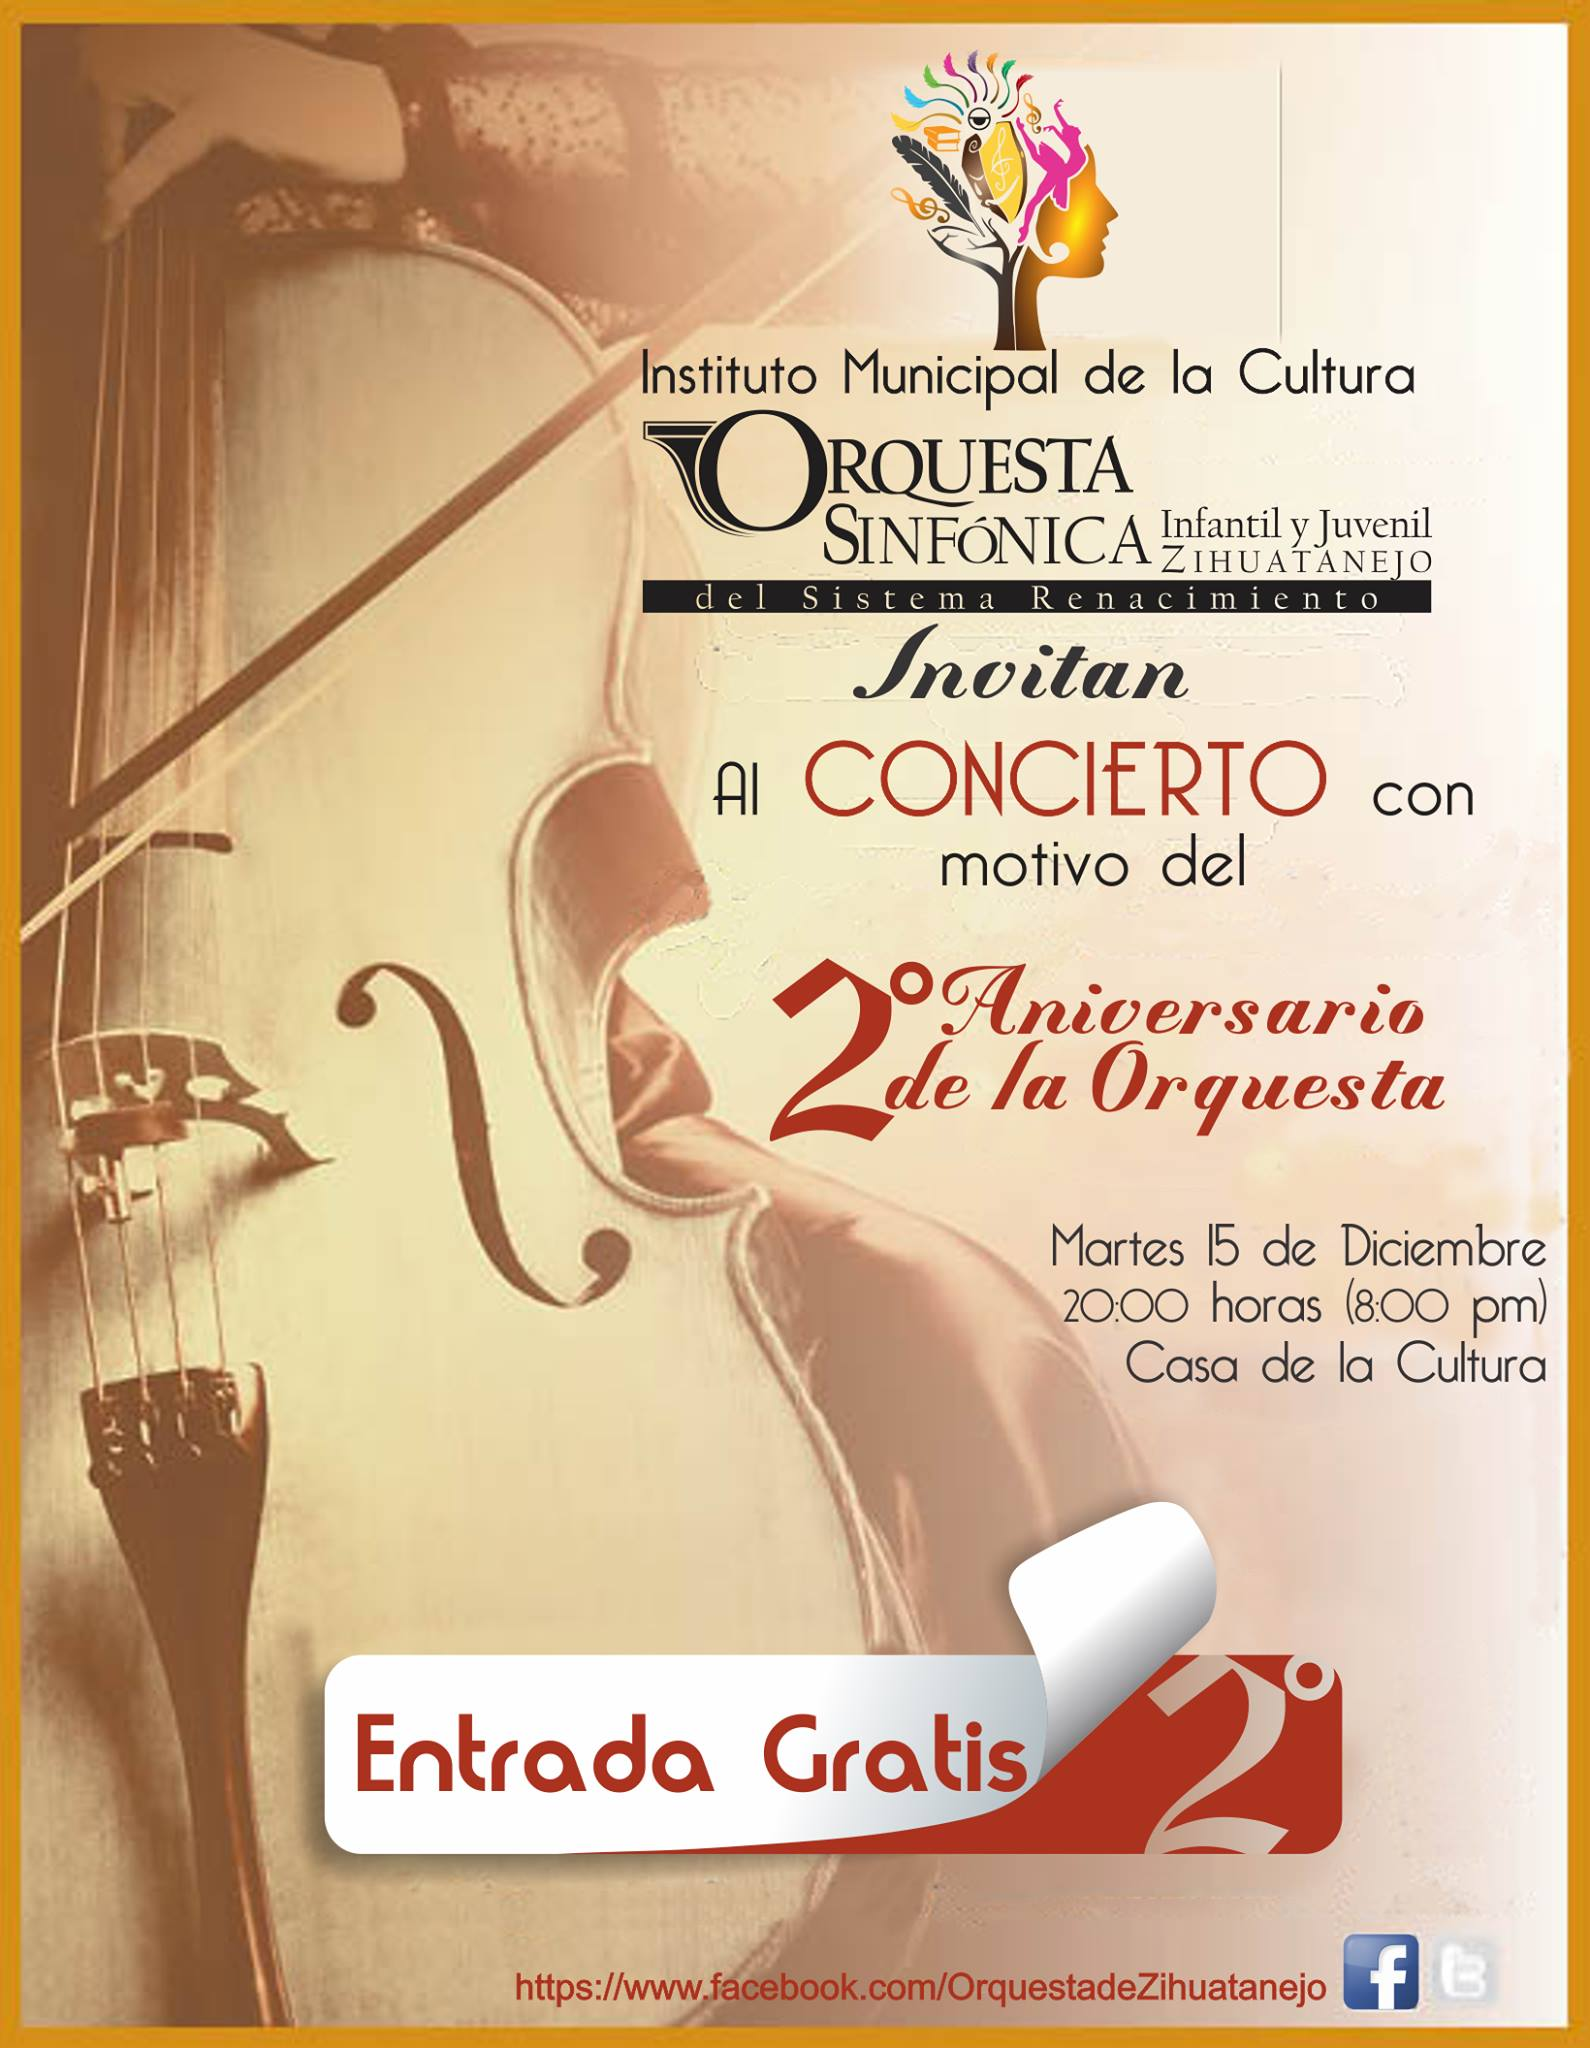 Zihuatanejo Children's and Youth's Symphonic Orchestra